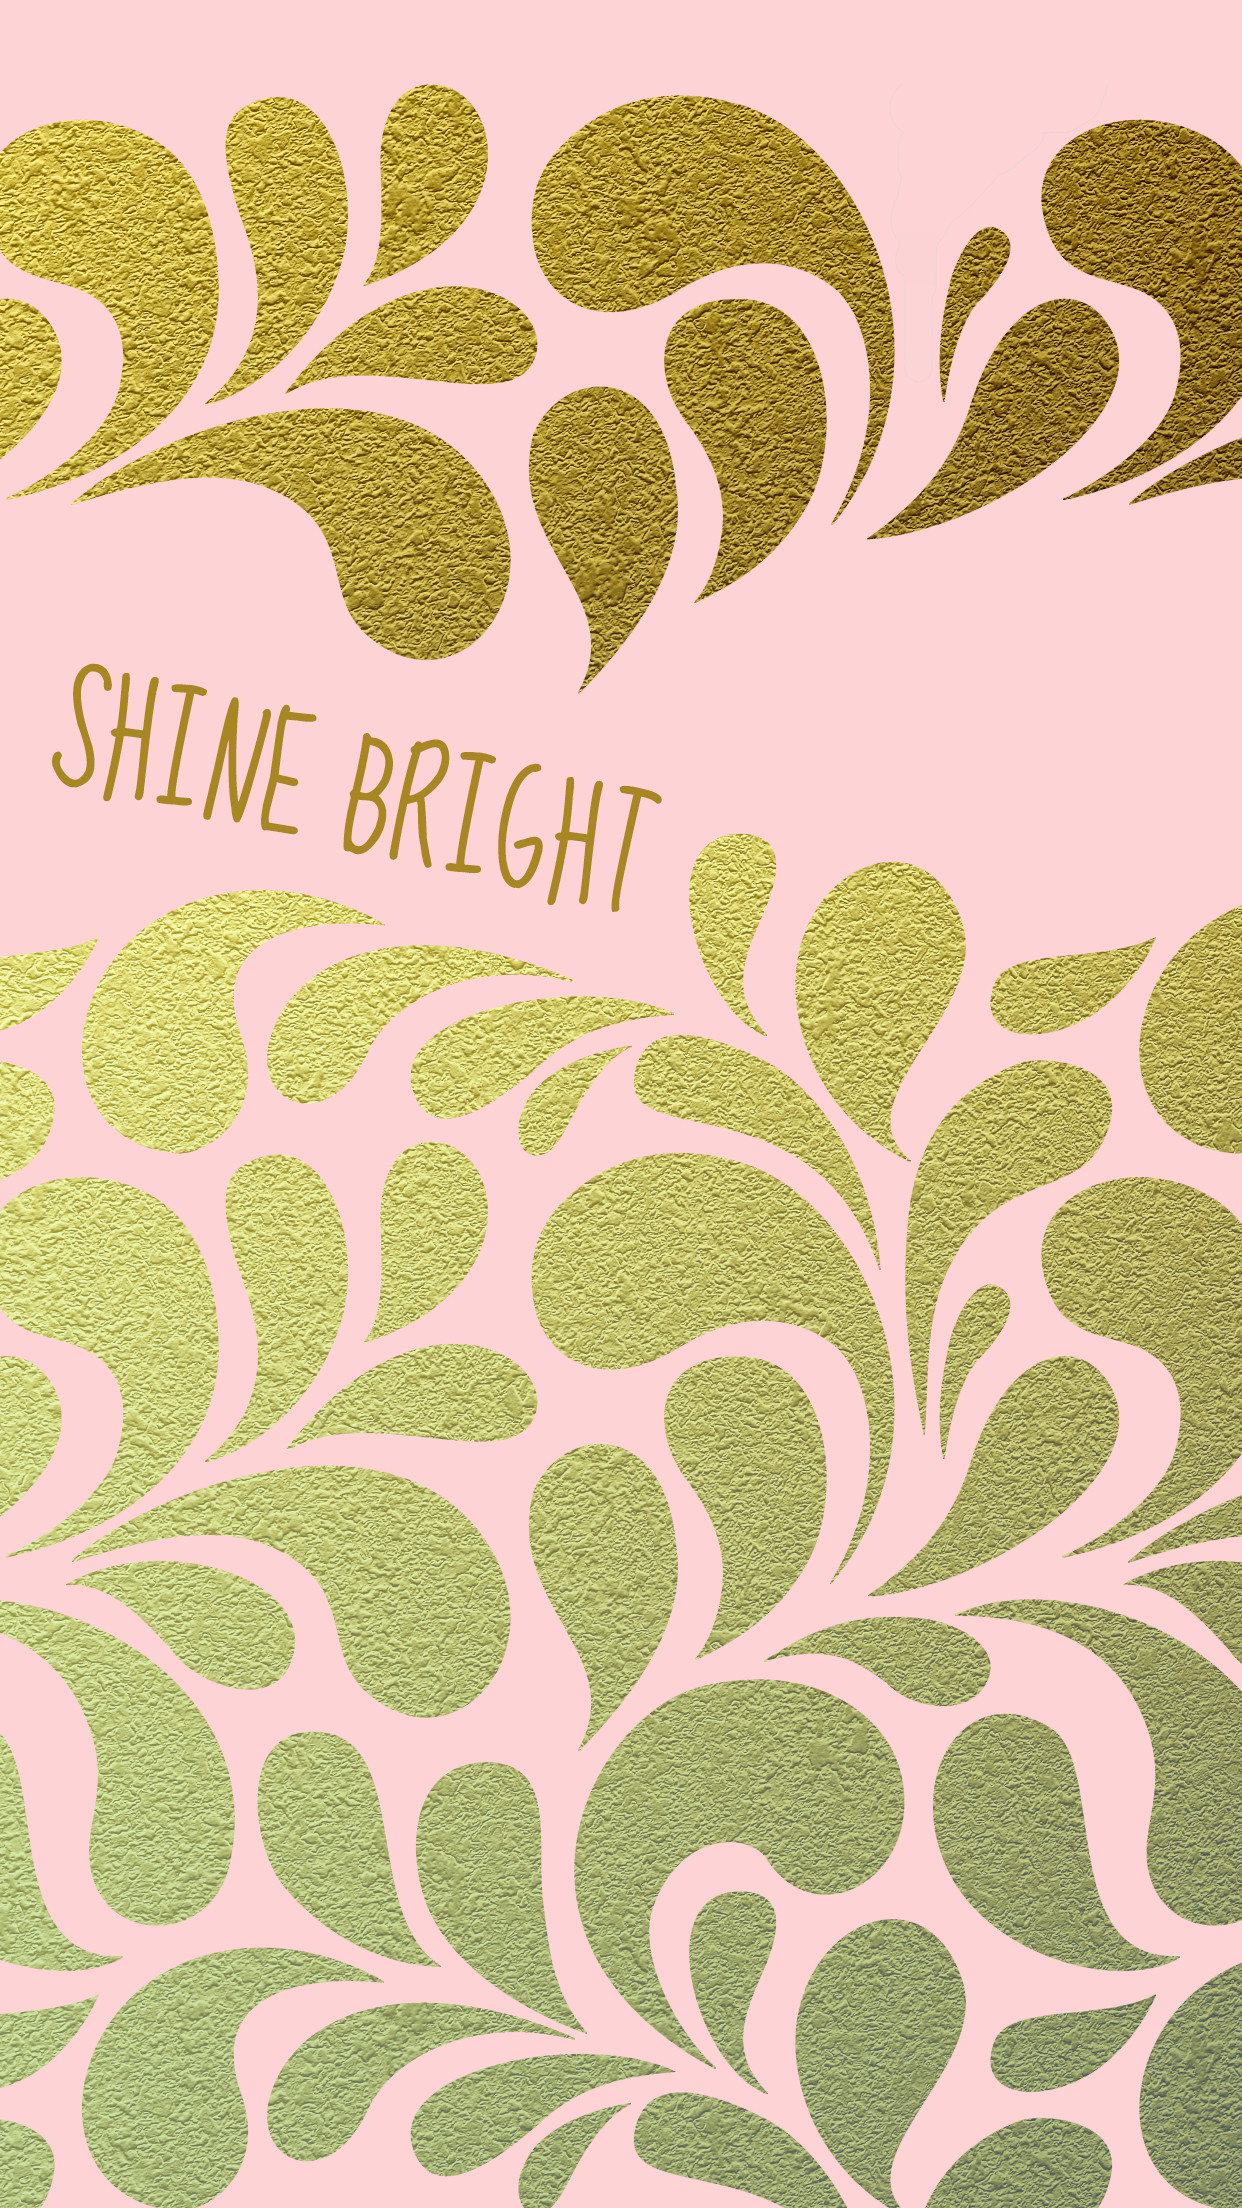 Shine Bright Blush Pink Gold iPhone Wallpaper Background